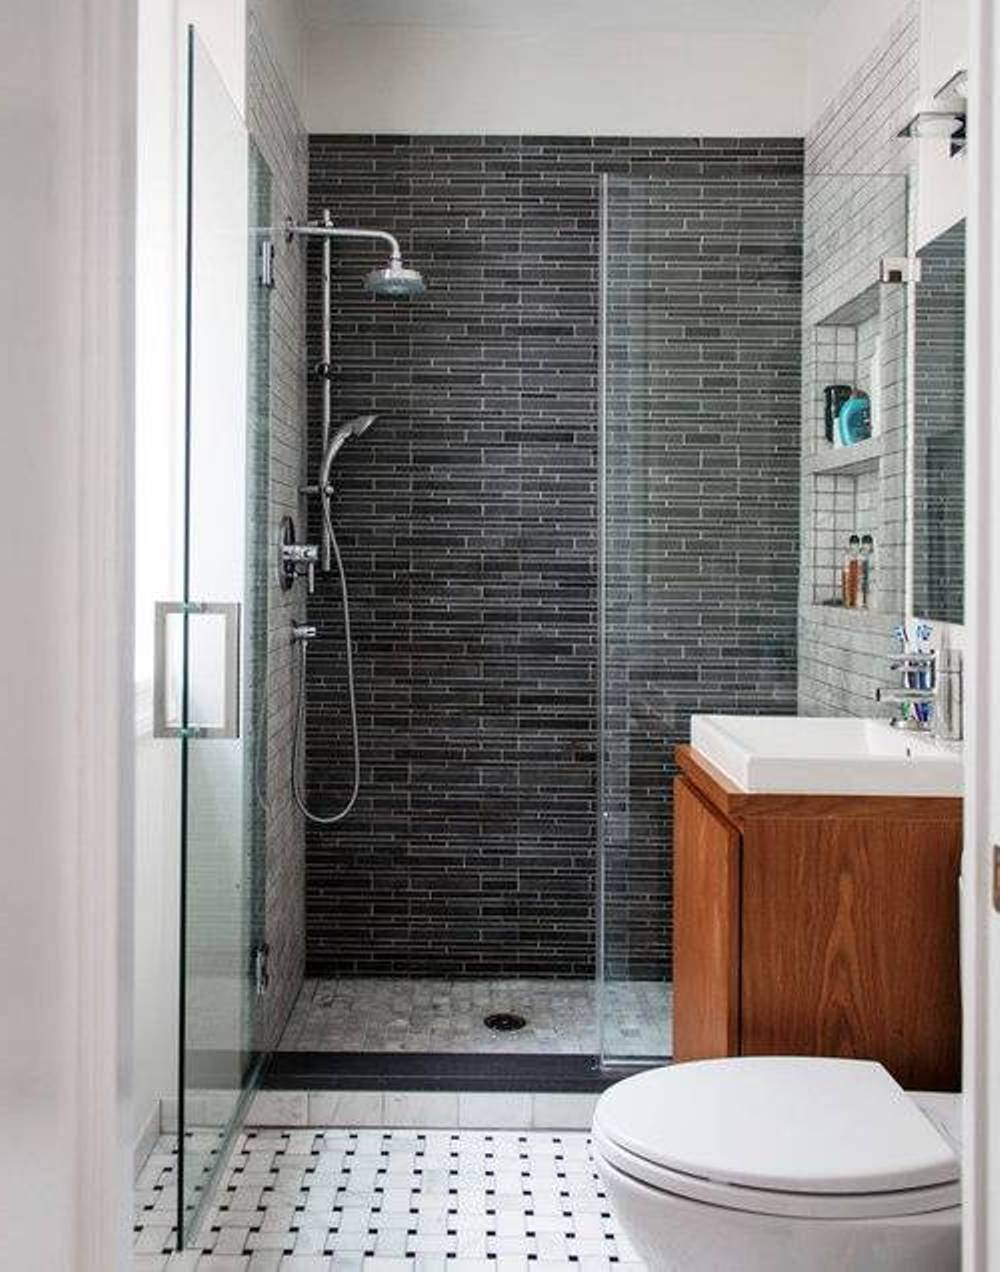 26 amazing pictures of traditional bathroom tile design ...